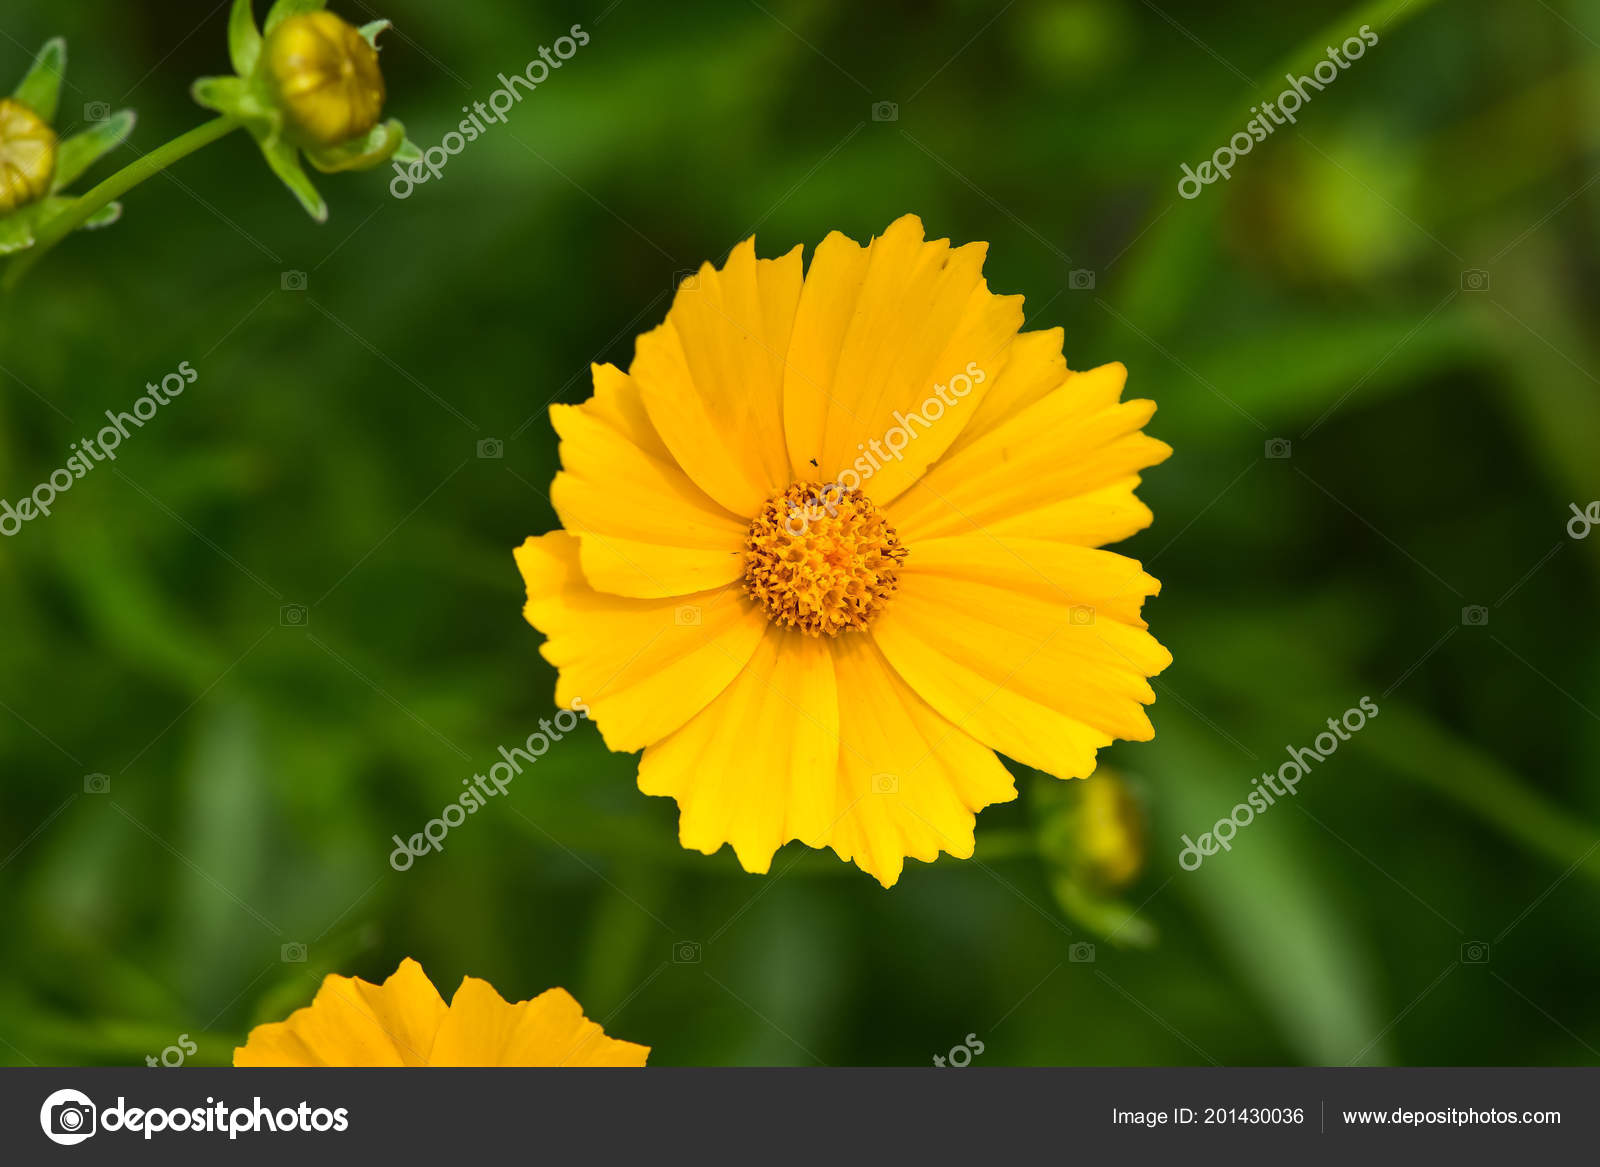 Wild flowers are beautiful flowers healthy beautiful wild flowers cosmos on a summer day meadow flower nature backgrounds textures vadim zhakupov gmail izmirmasajfo